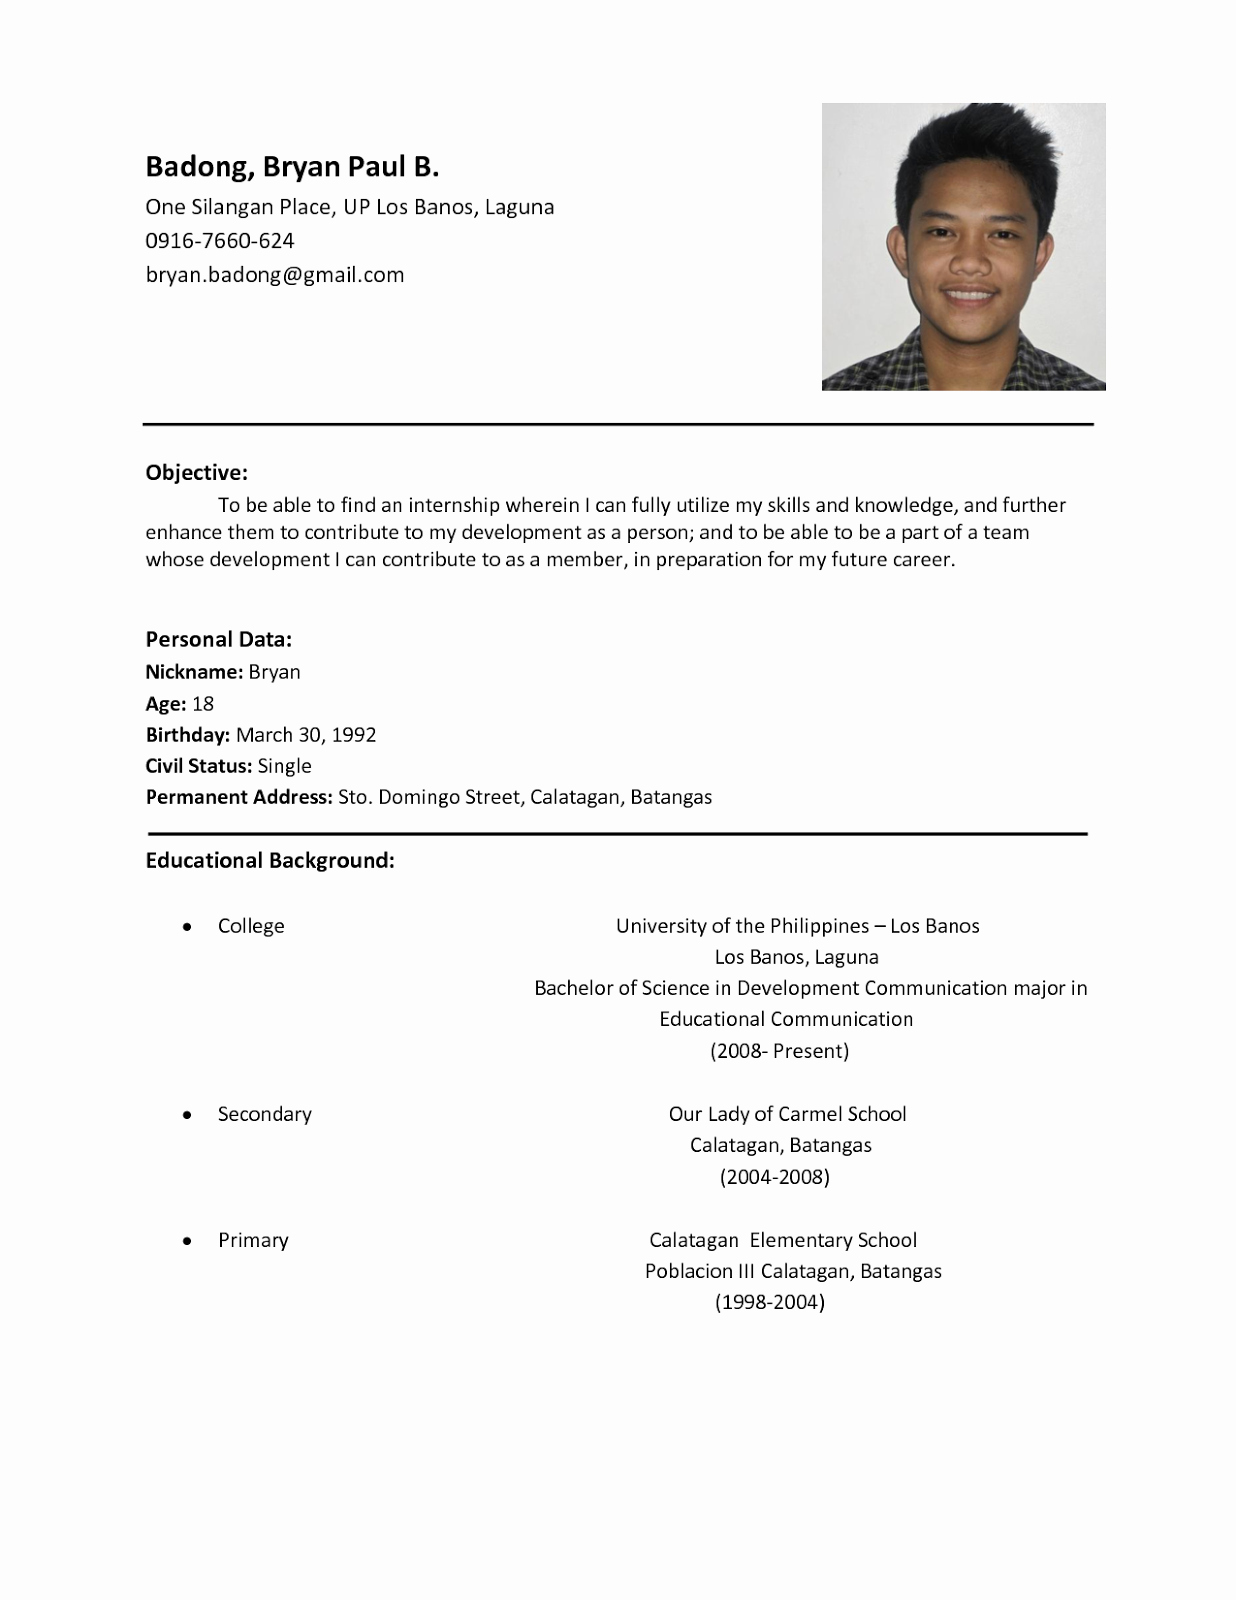 Cv Samples for Students New Sample Resume format for Students